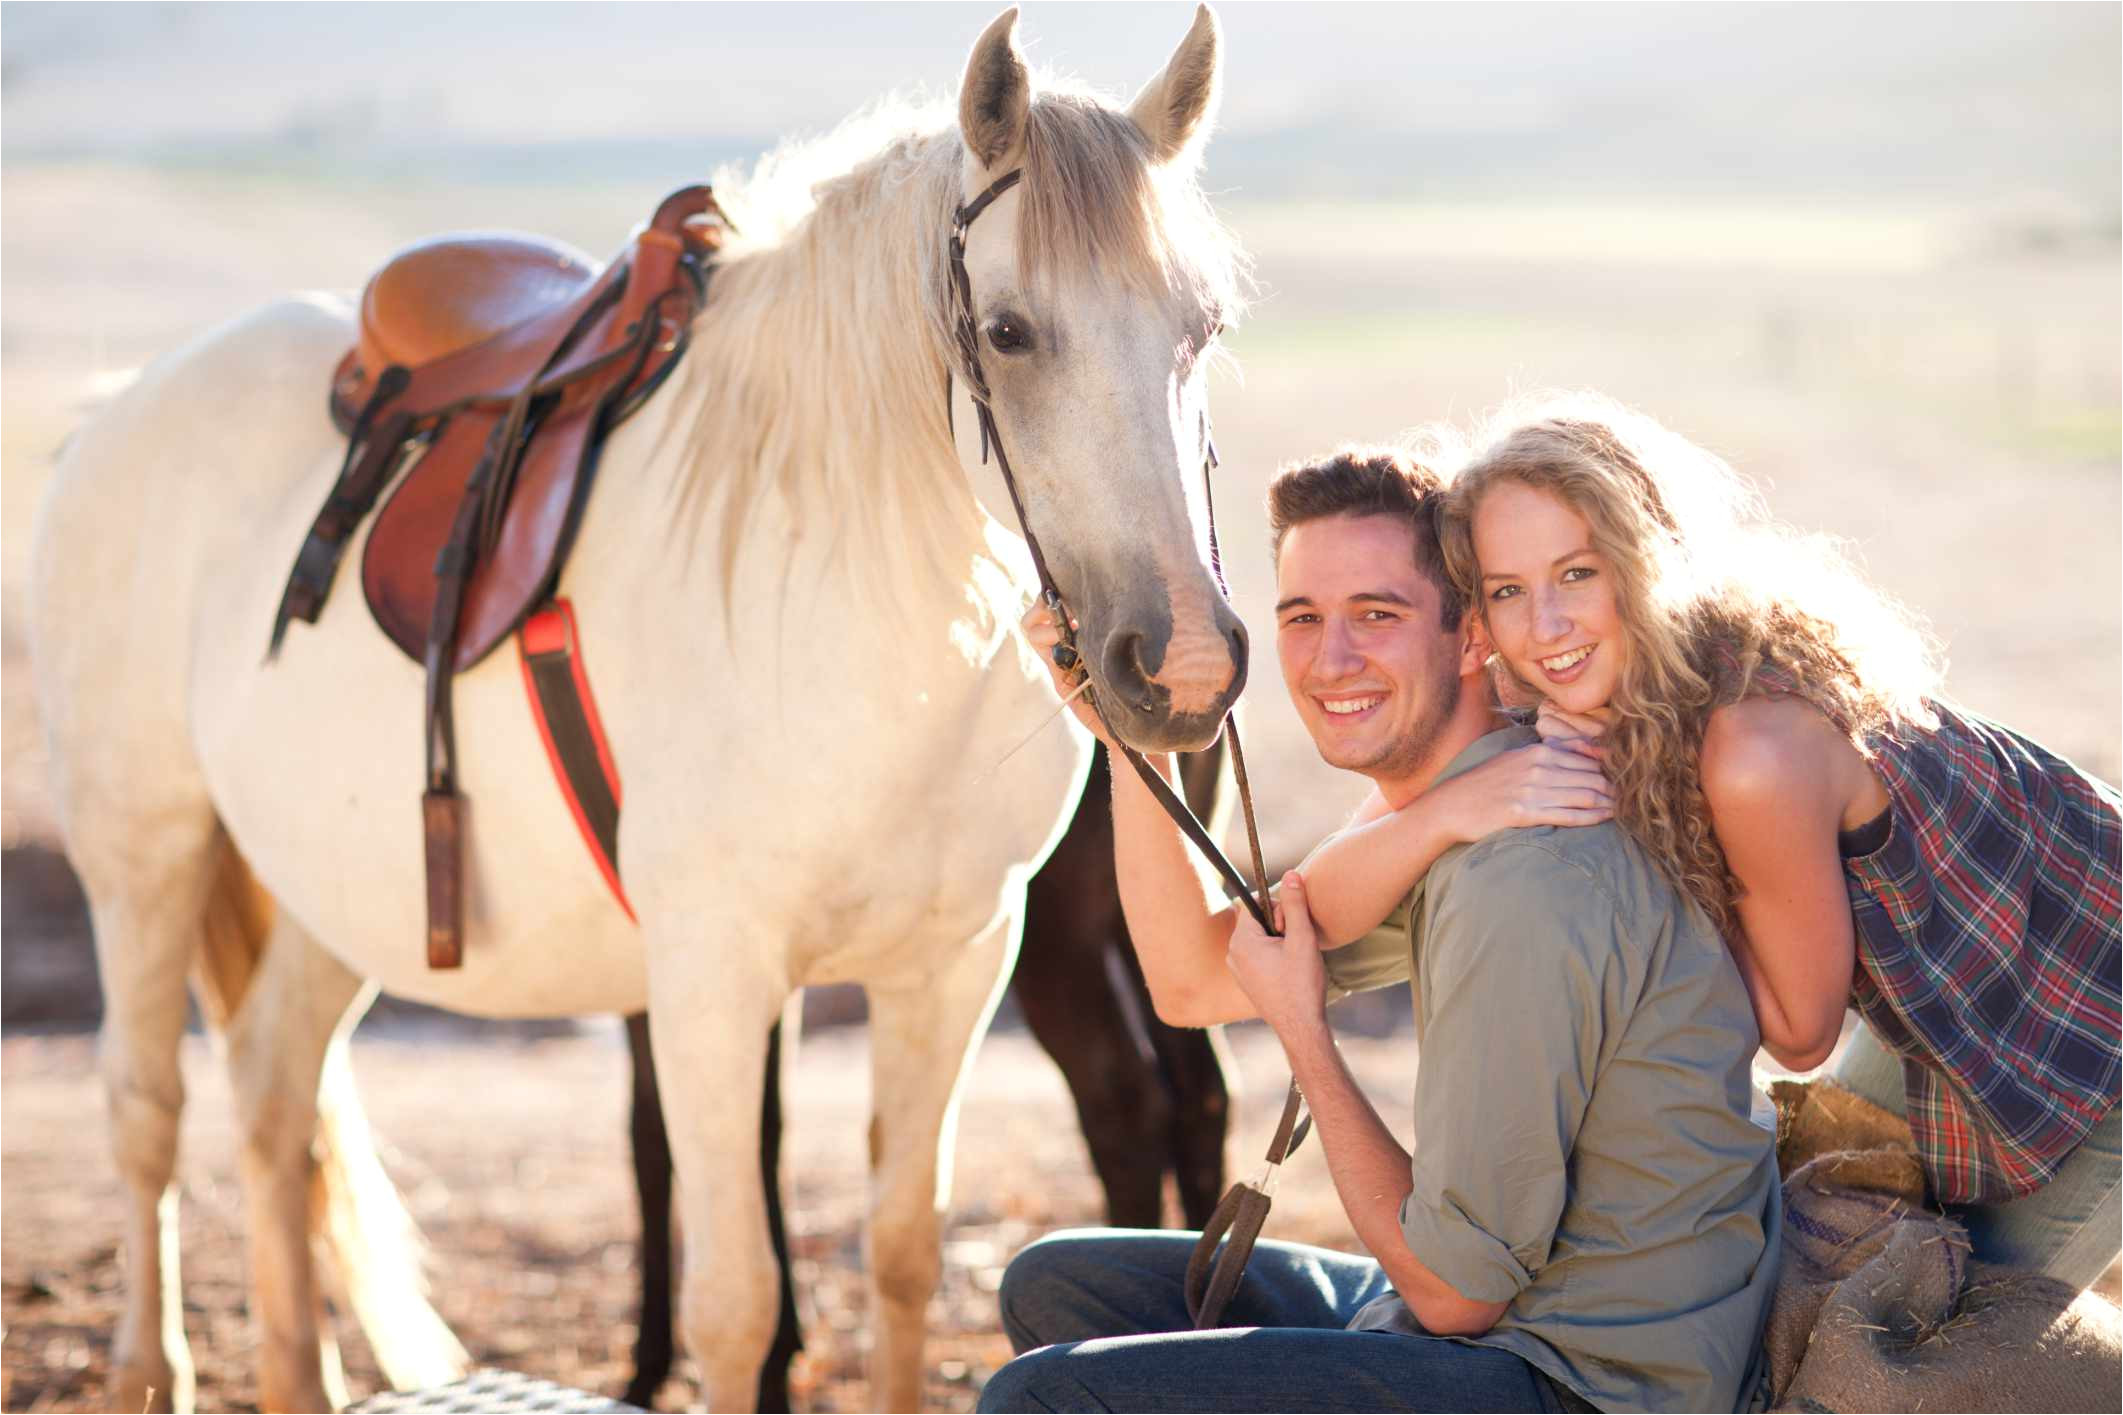 equestrian cupid online dating for cowboys and cowgirls